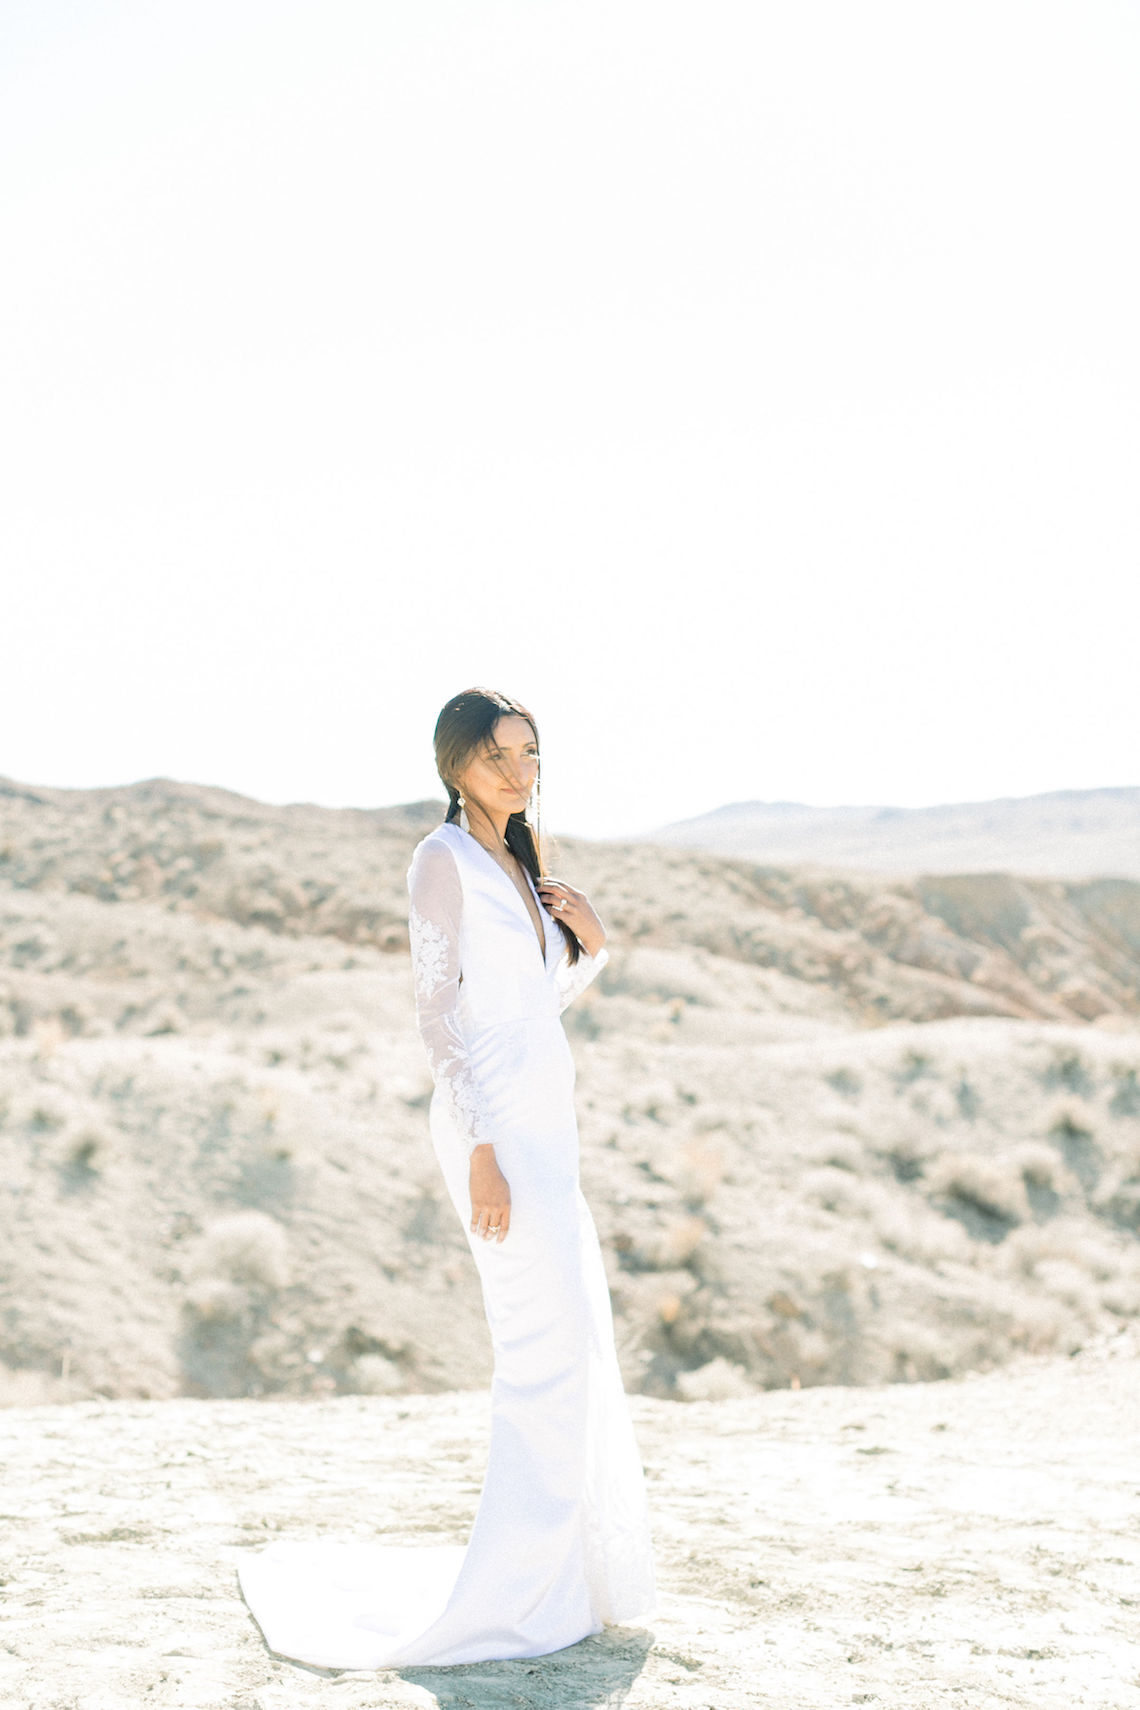 Rainbow Basin Desert Wedding Inspiration with Moon Stationery – Victoria Masai Photography 13